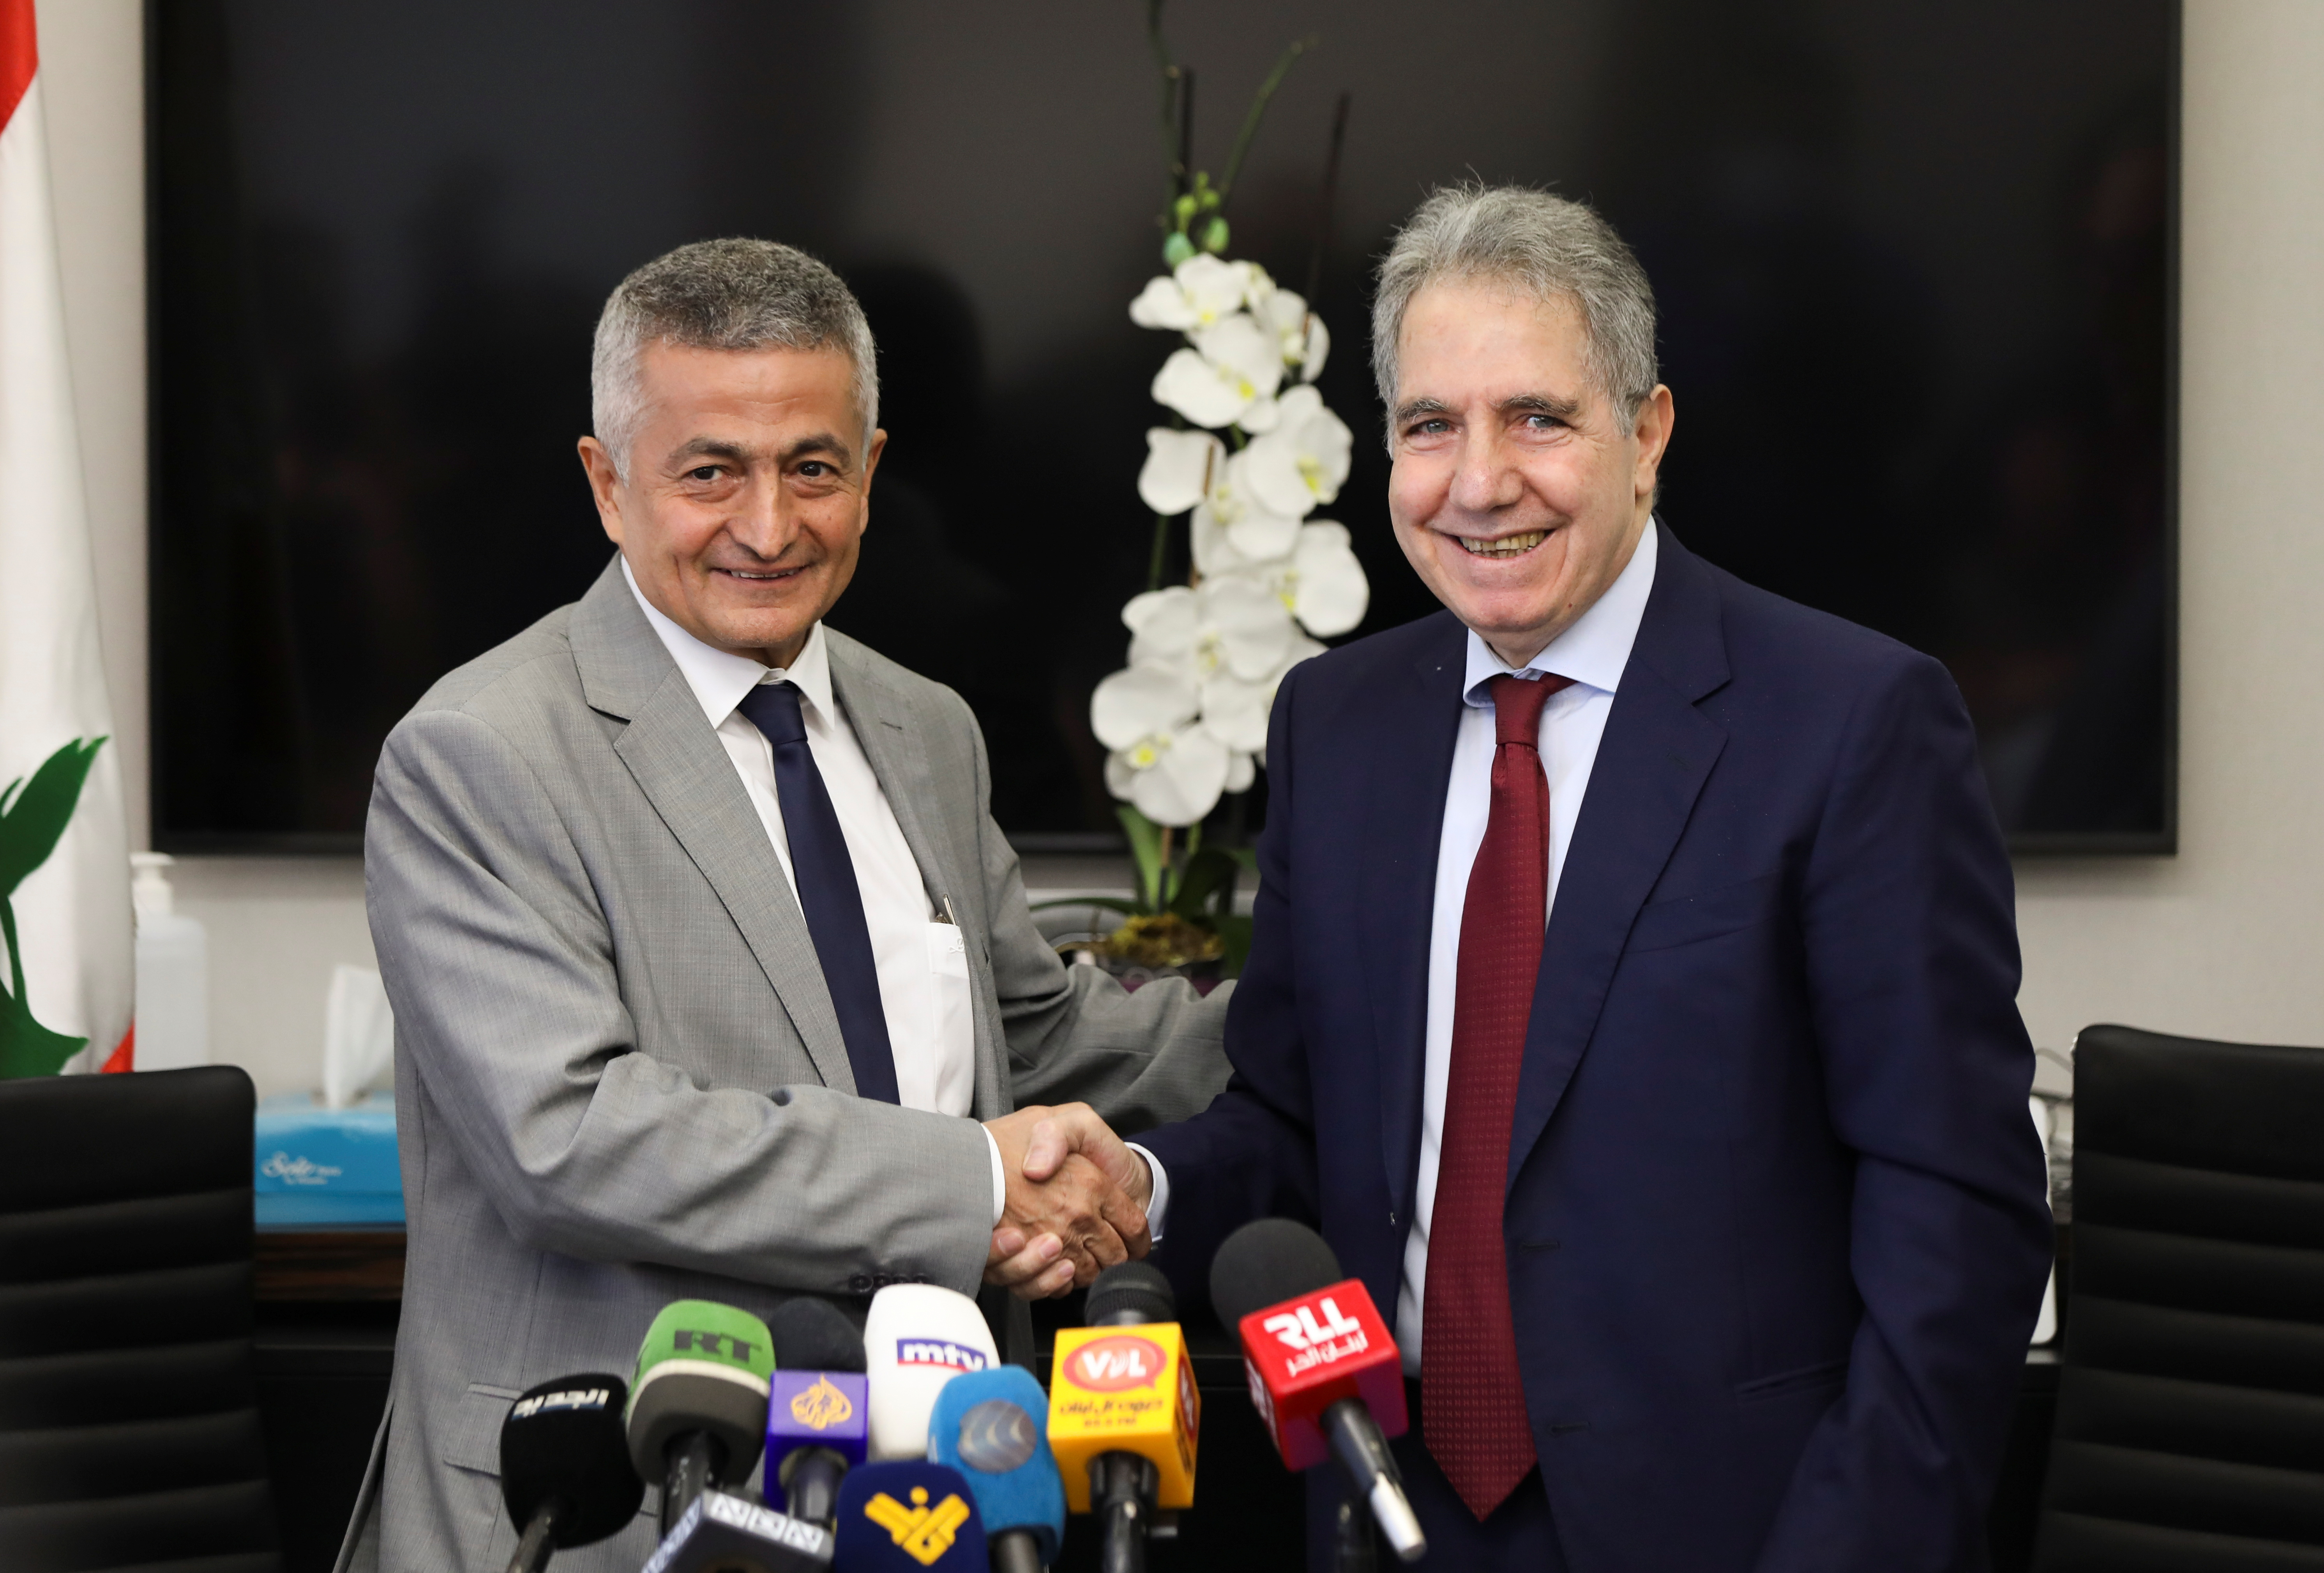 Lebanon's outgoing Finance Minister Ghazi Wazni shakes hands with the newly appointed Finance Minister Youssef Khalil during a handover ceremony in Beirut, Lebanon September 14, 2021. REUTERS/Mohamed Azakir